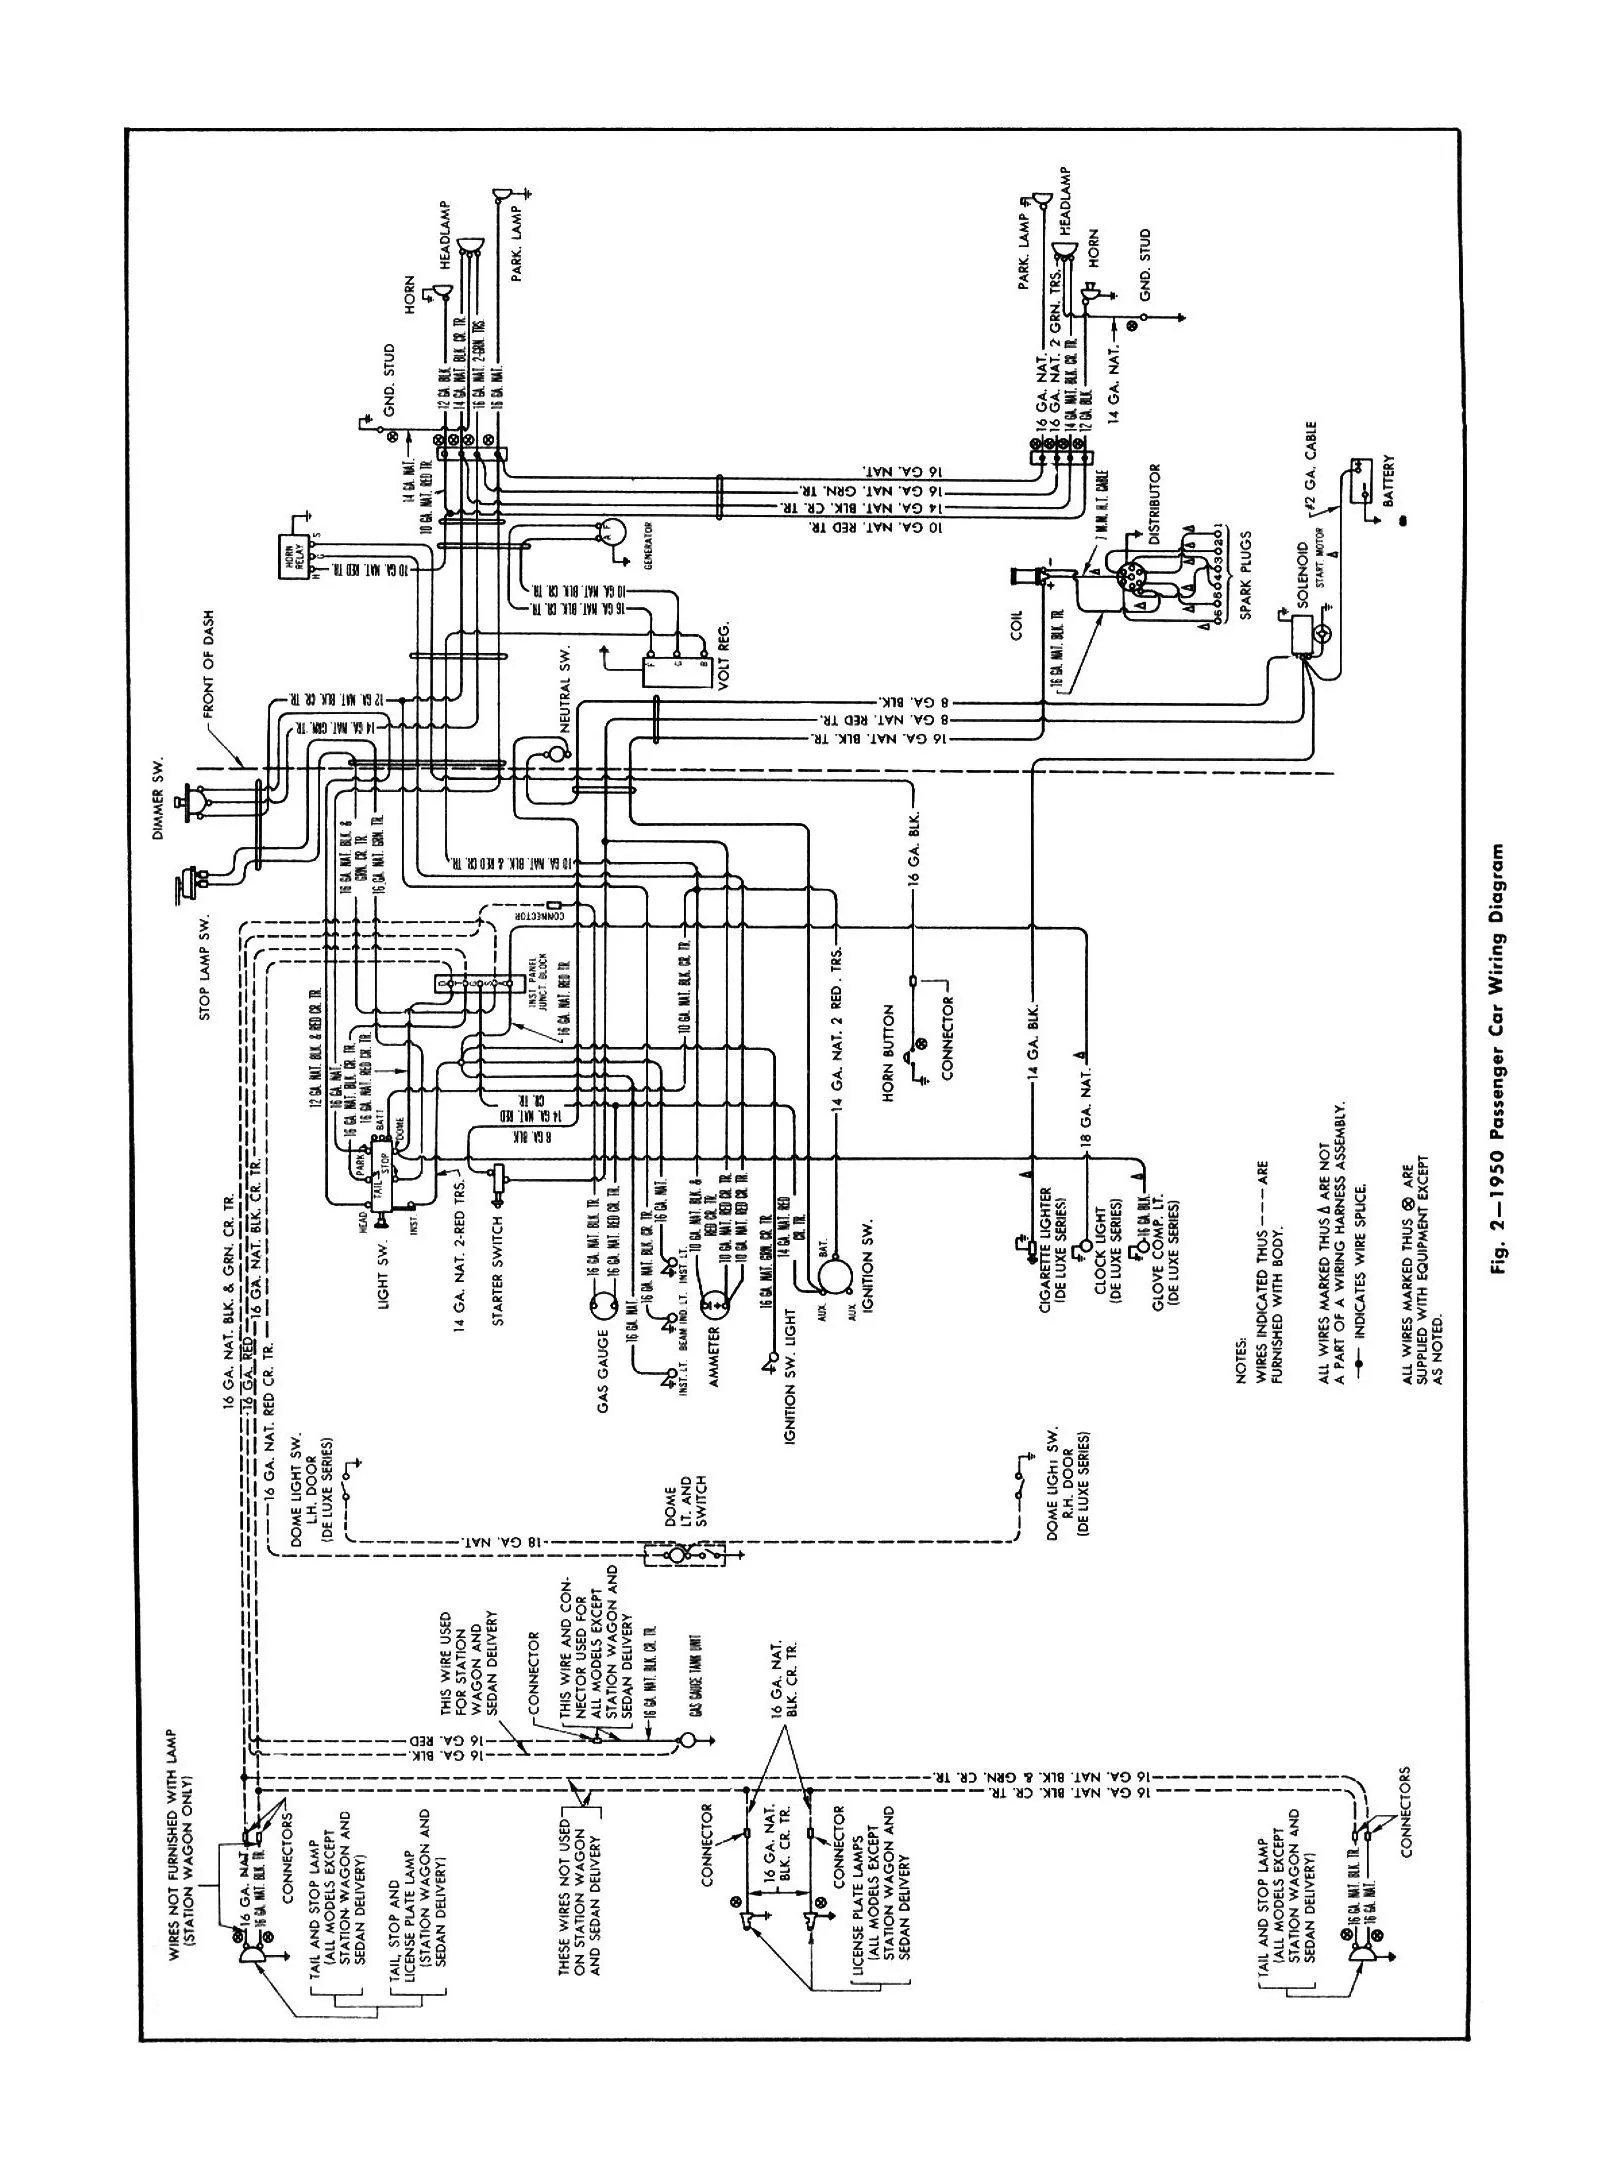 small resolution of 1952 chevy truck wiring diagram wiring library 1949 ford wiring diagram 1952 chevy pick up wiring diagram